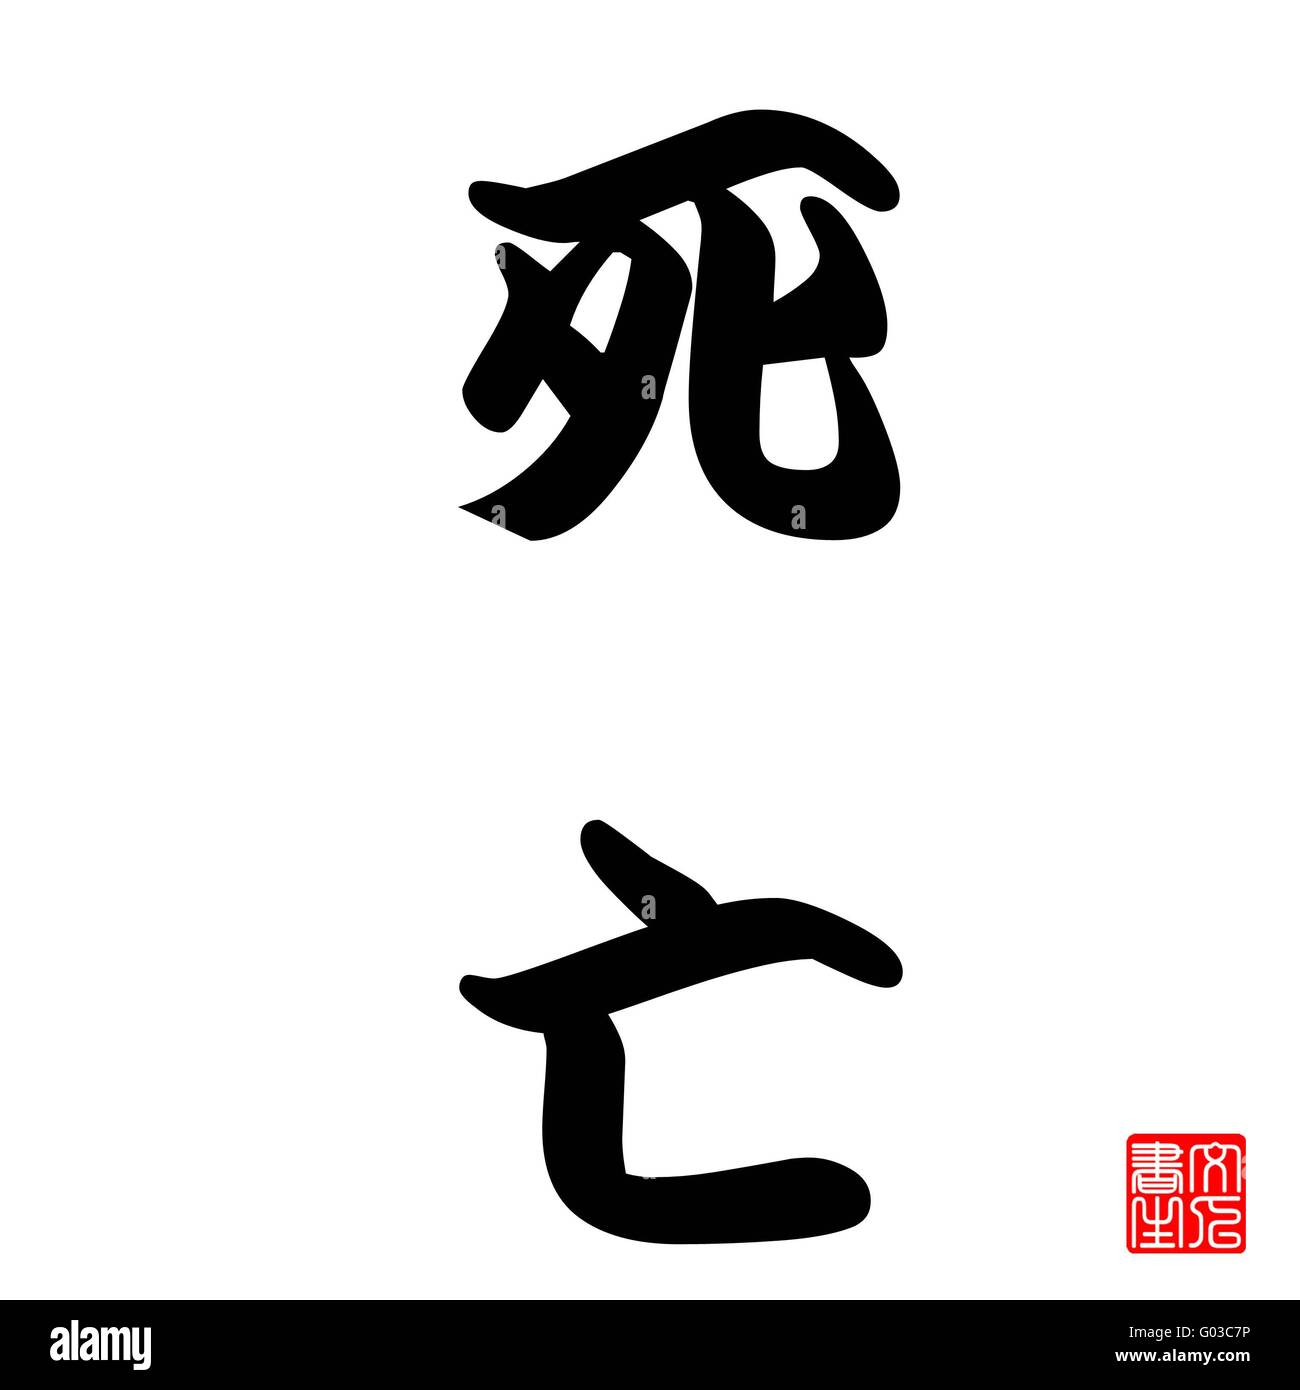 Japanese calligraphy represents death stock photo 103337690 alamy japanese calligraphy represents death biocorpaavc Image collections